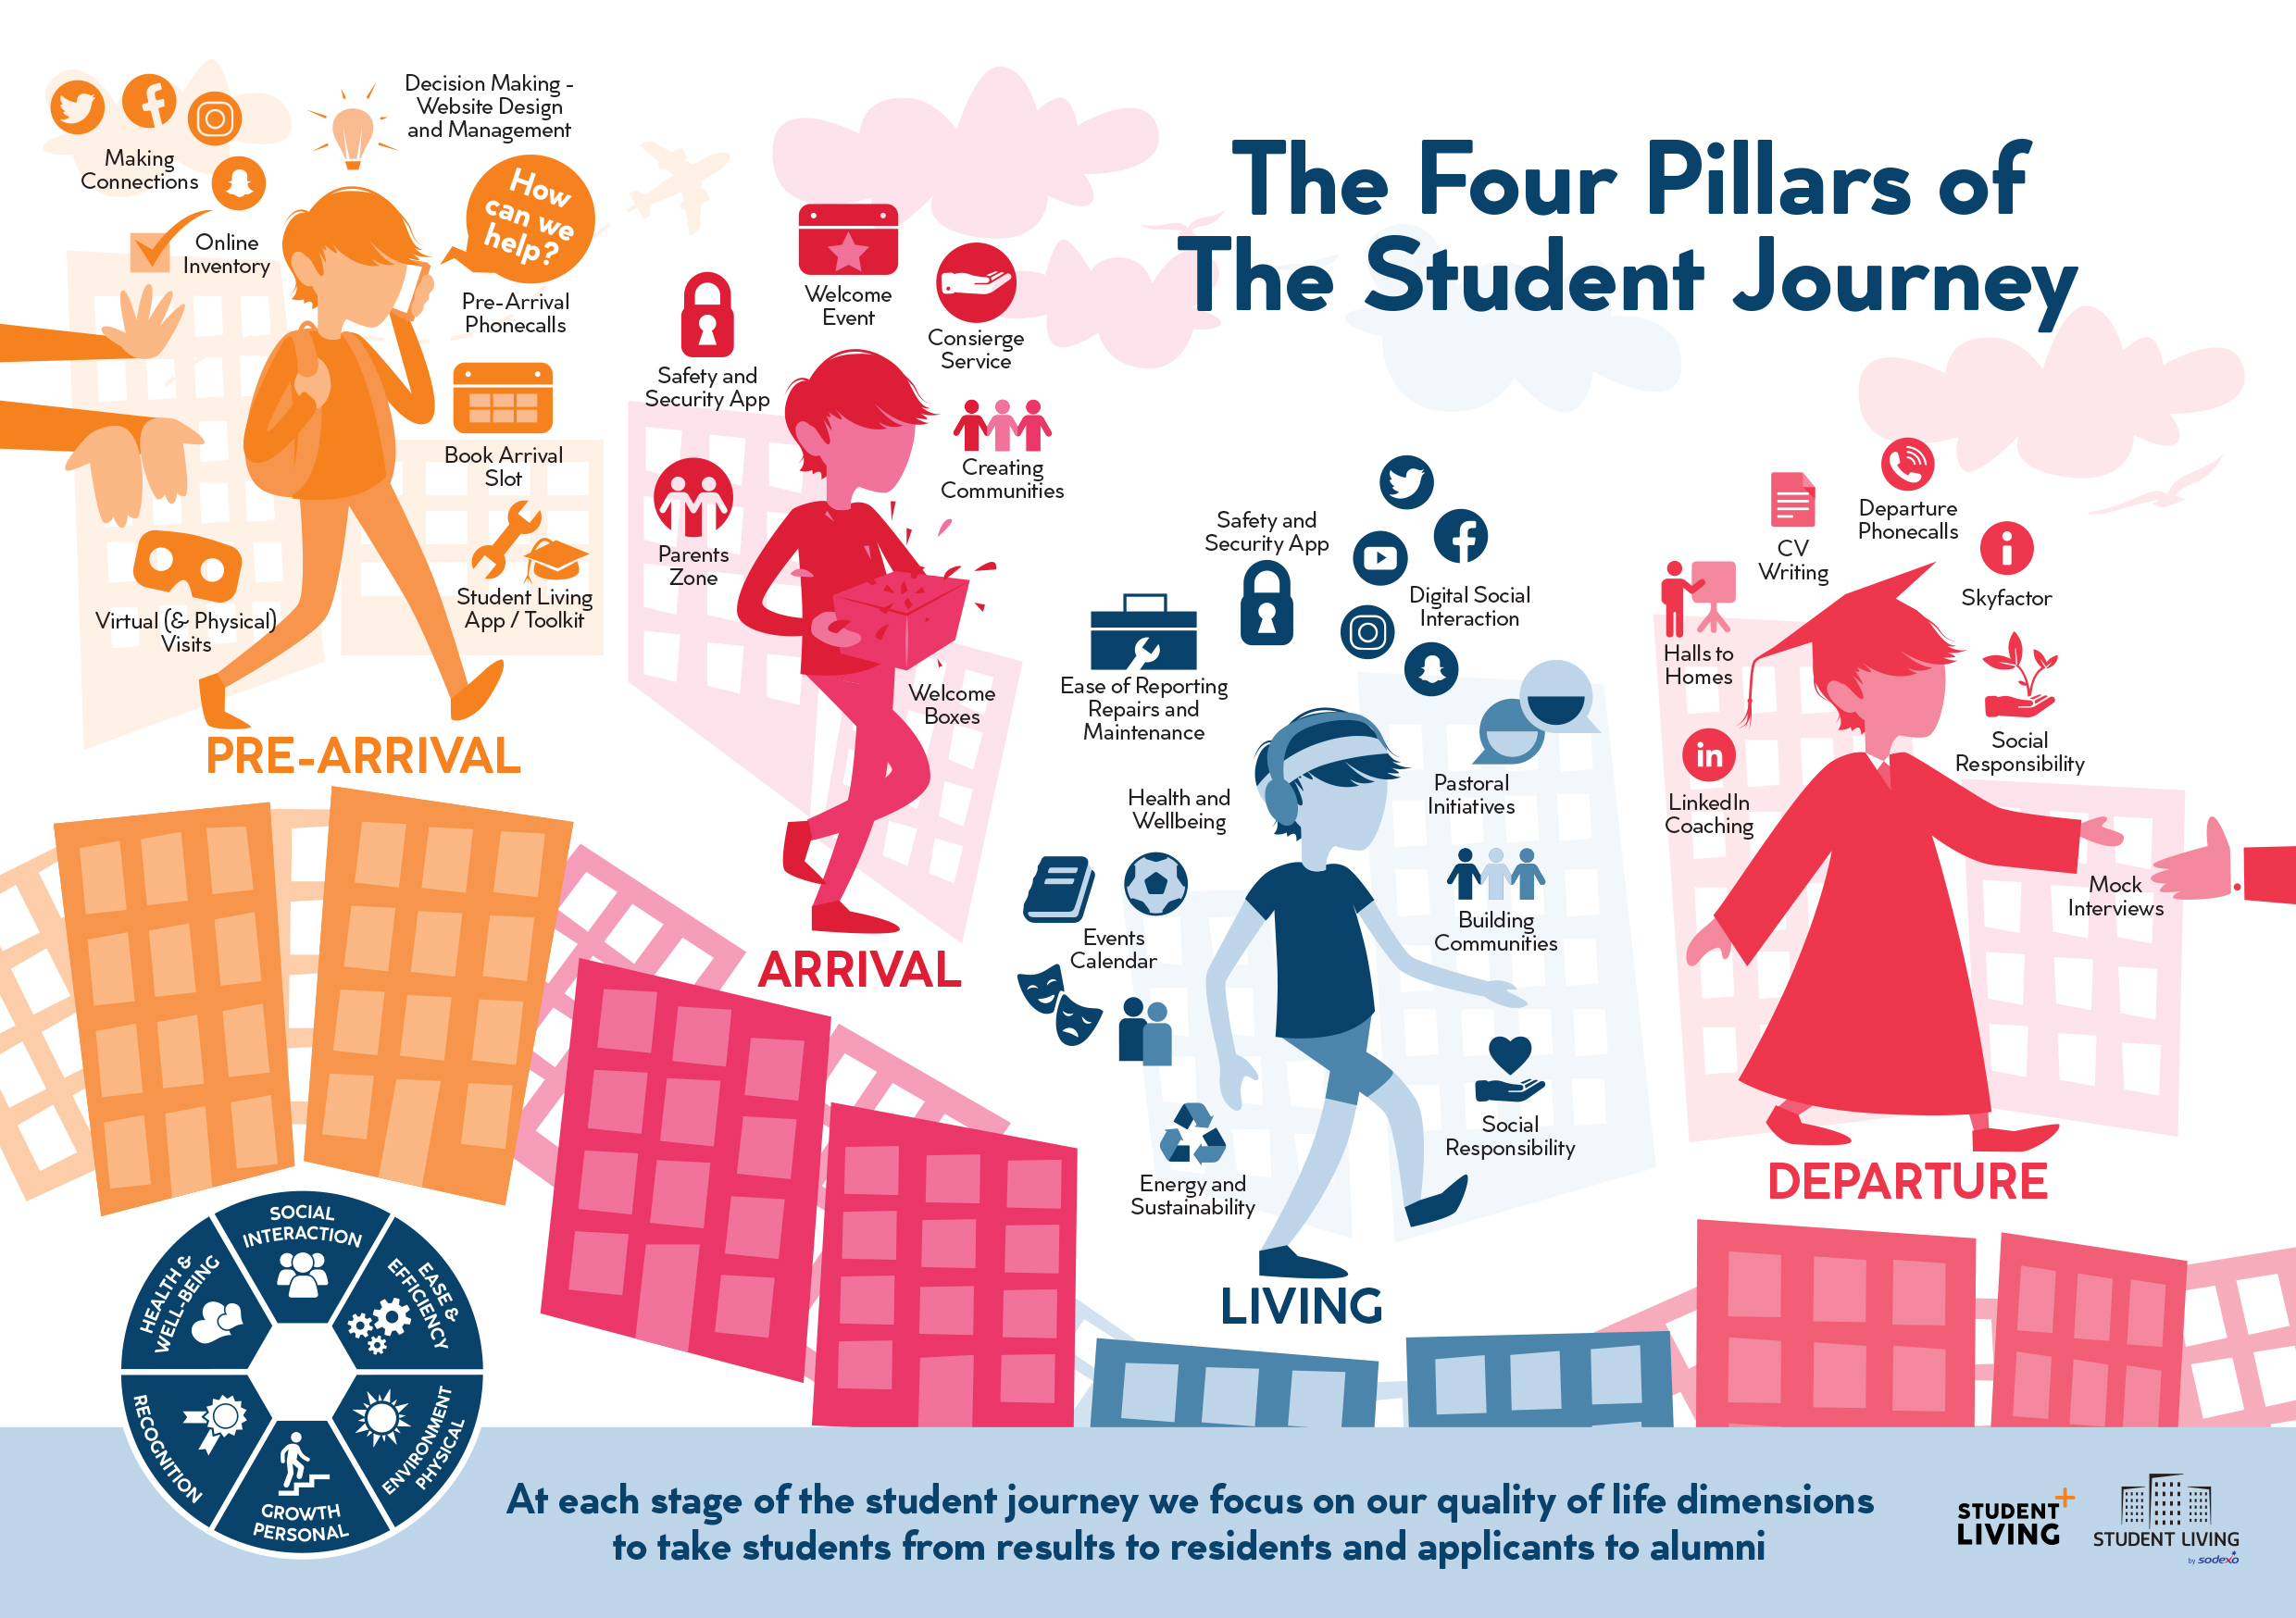 The Four Pillars of the Student Journey